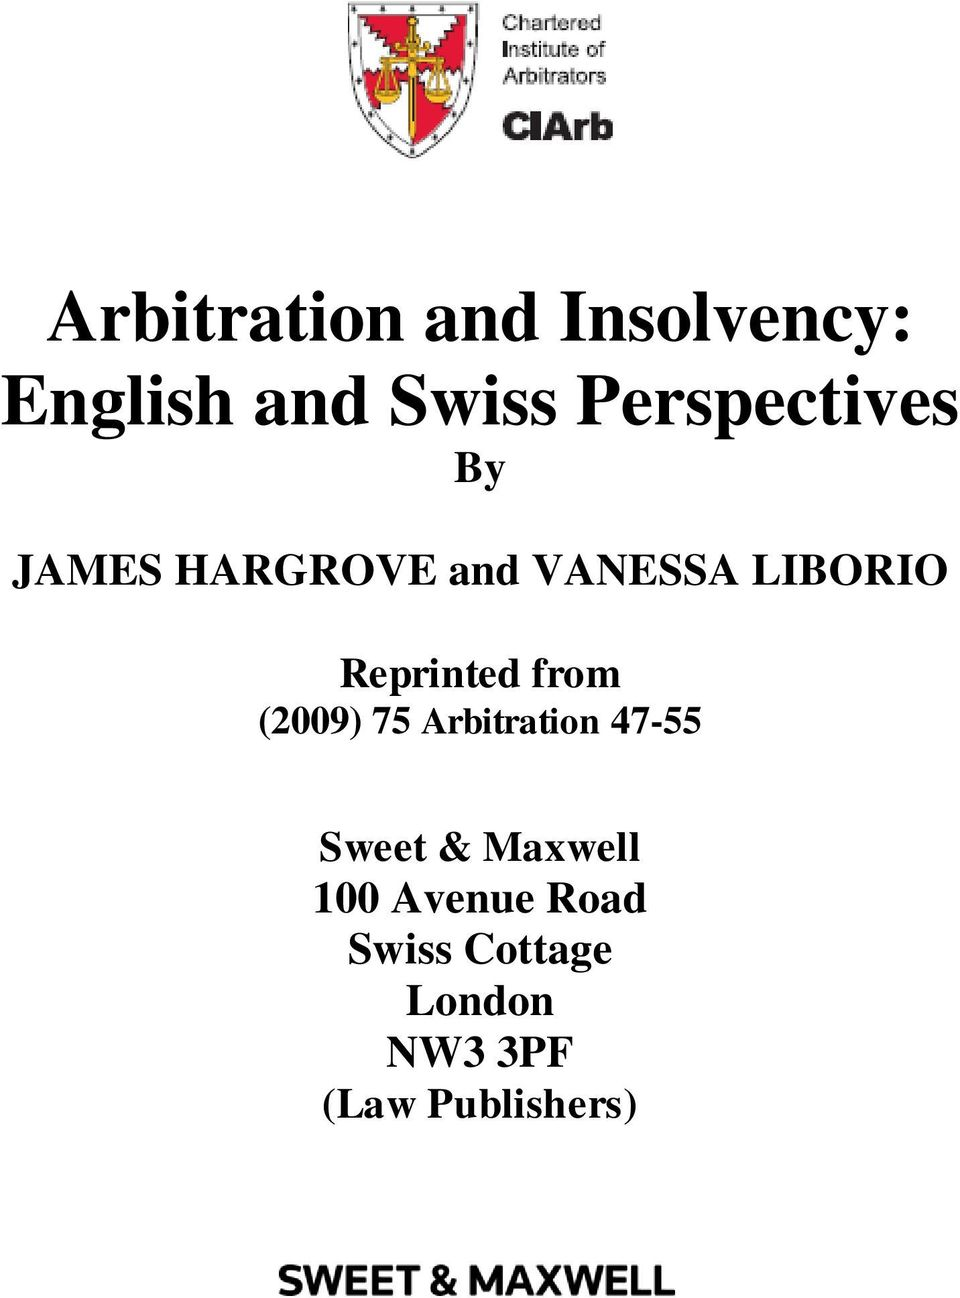 Reprinted from (2009) 75 Arbitration 47-55 Sweet &